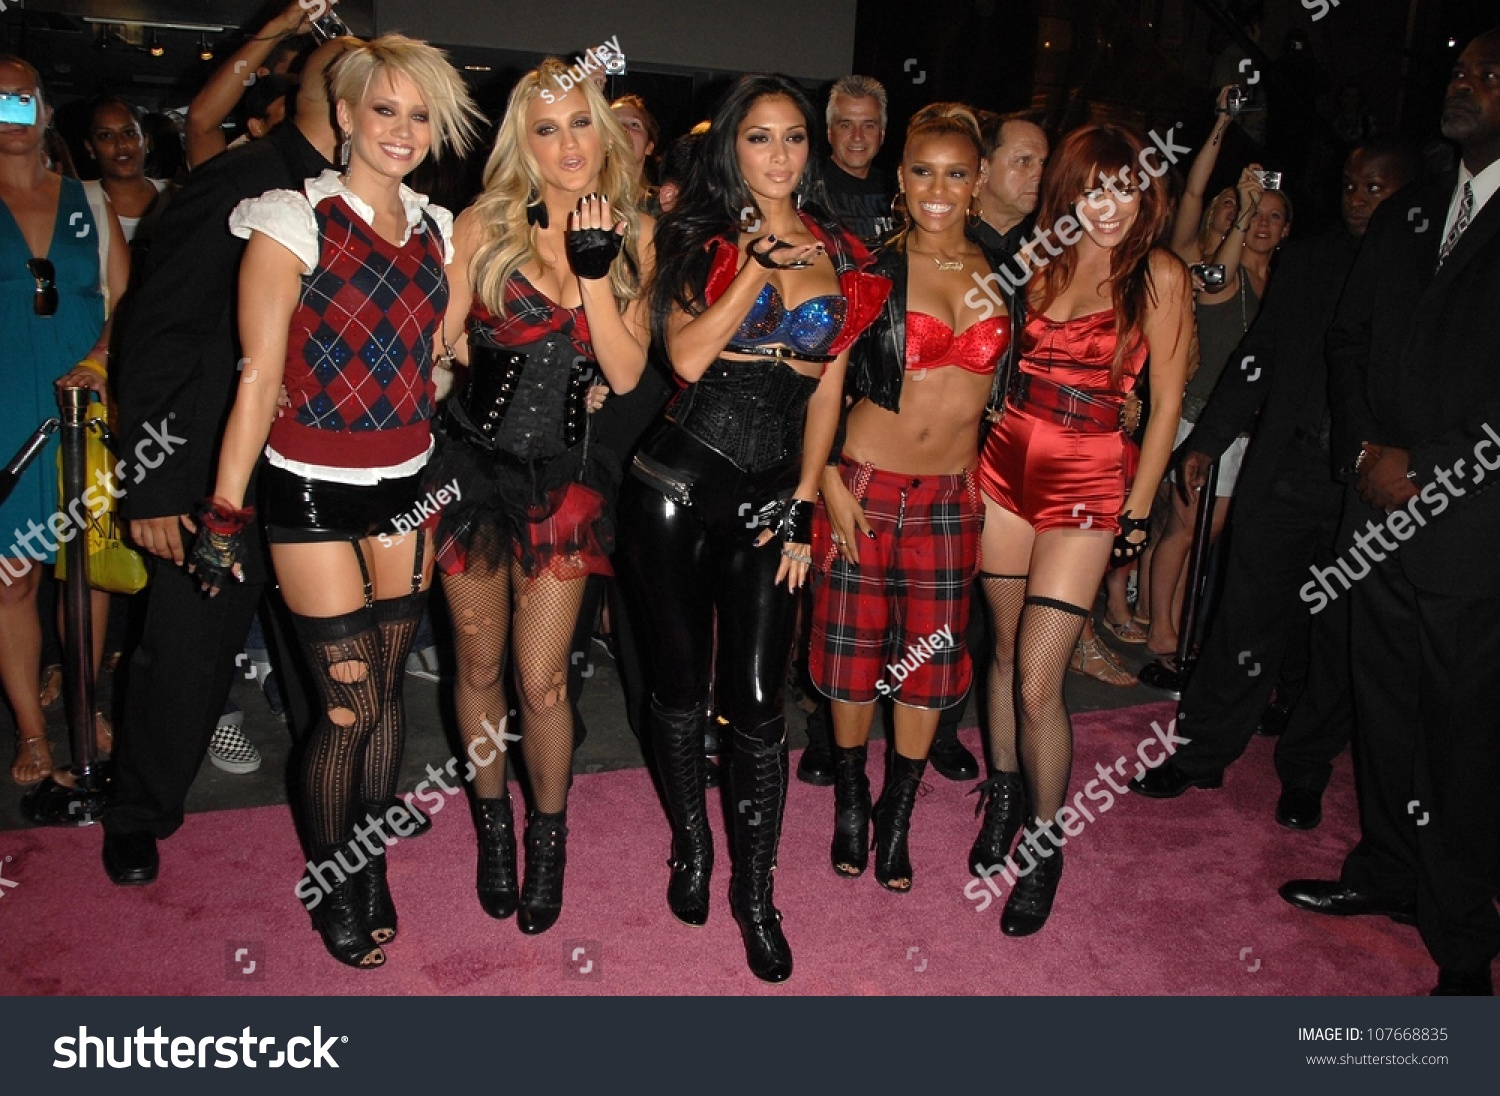 Pussycat Dolls at an concert to promote the new Pussycat Doll's album 'Doll  Domination'